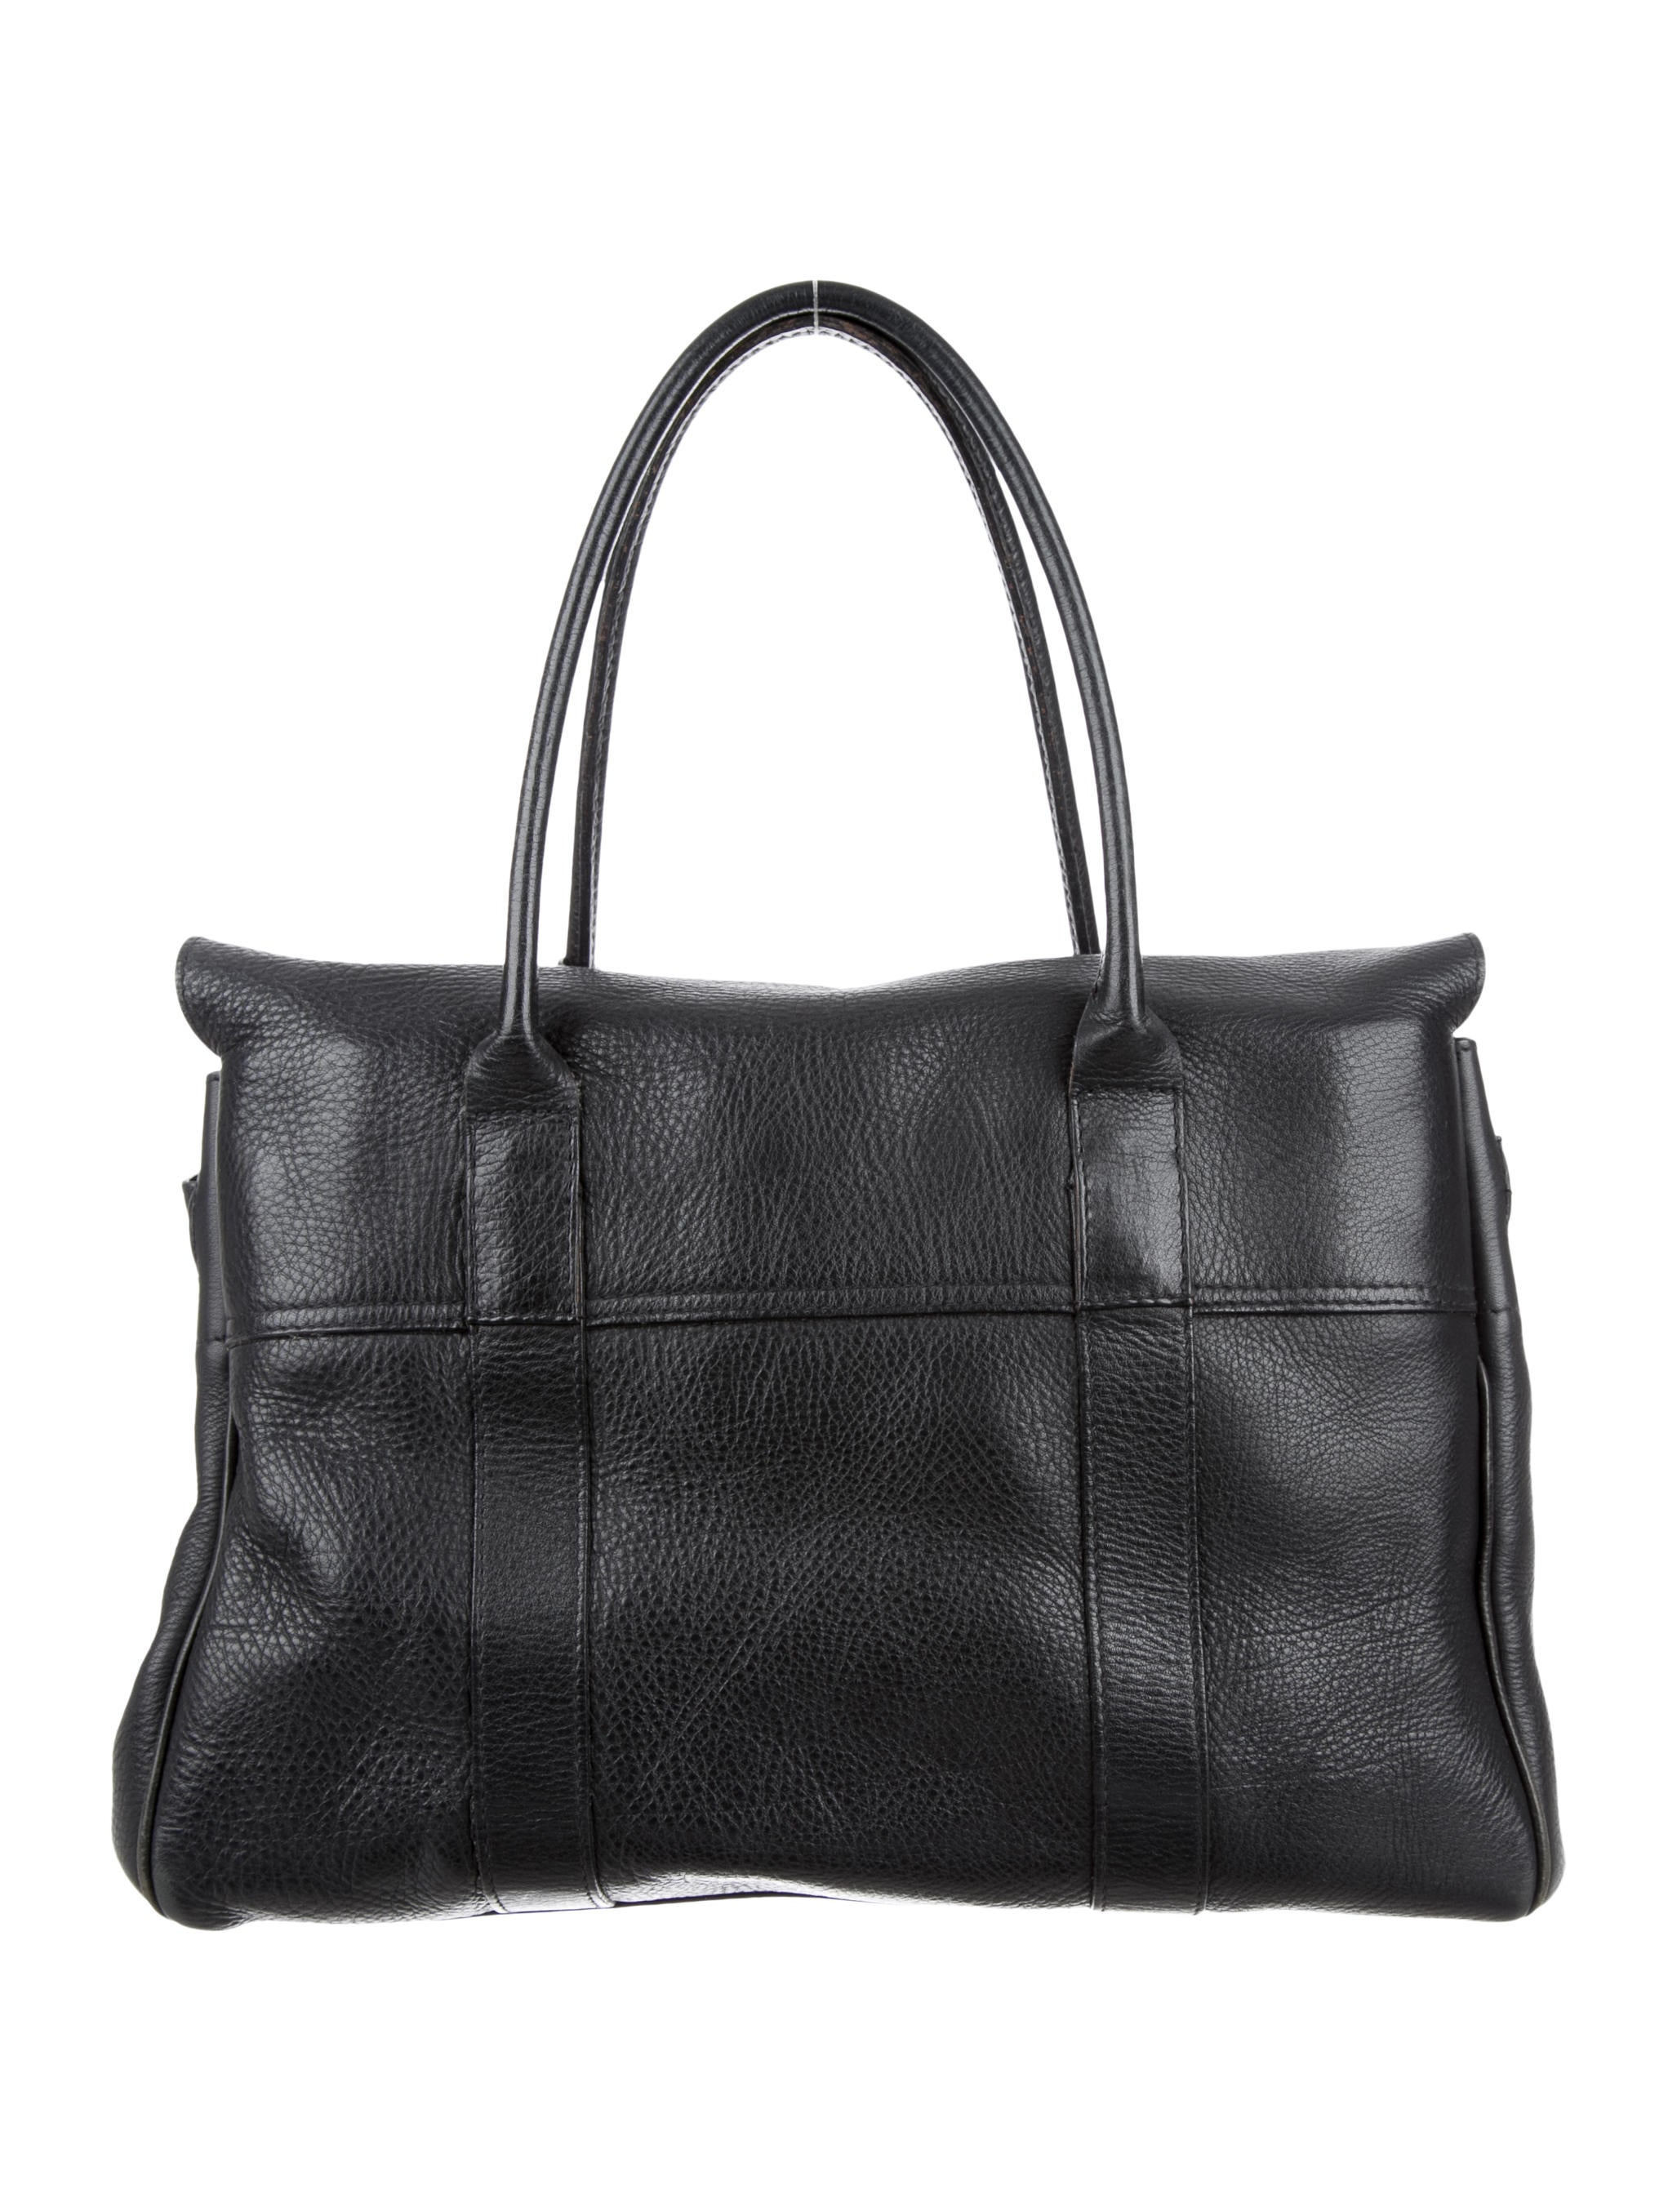 Mulberry bayswater leather tote handbags mul22315 for The bayswater